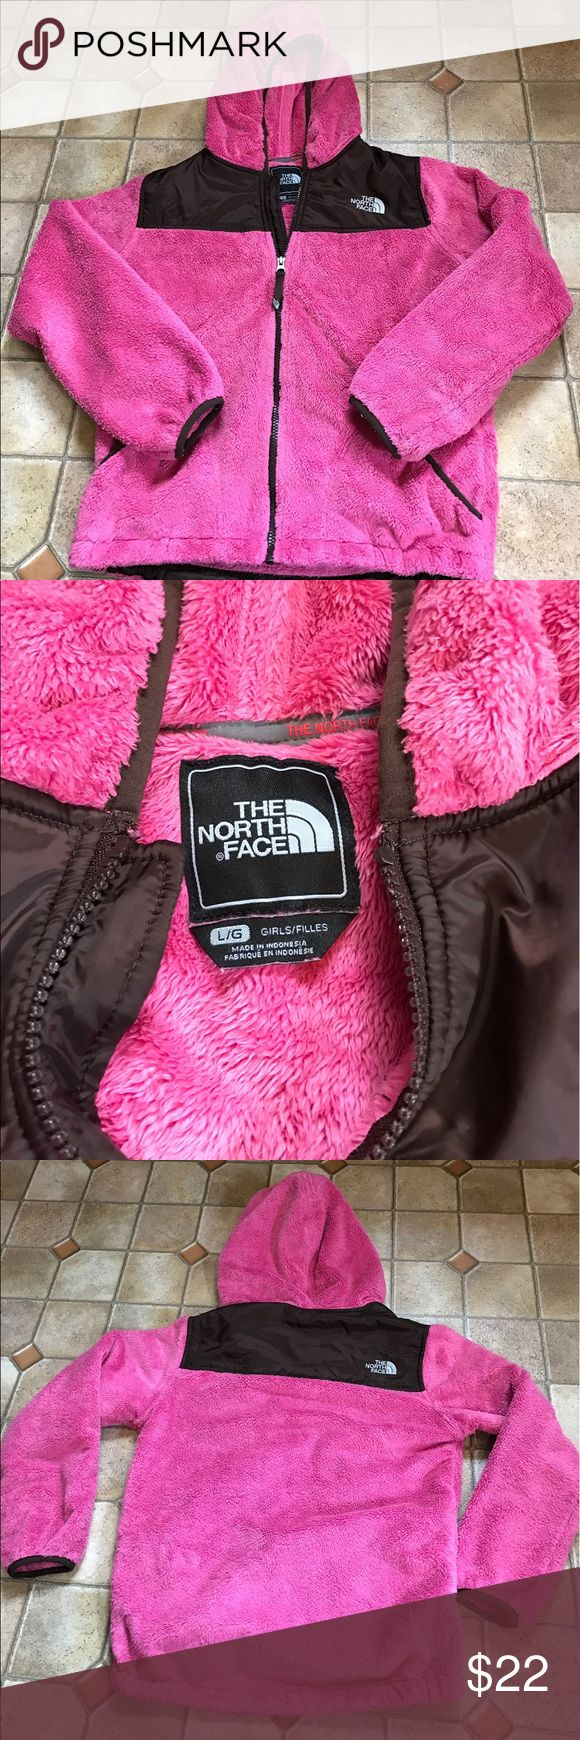 Girls north face full zip up jacket Large 12-14 Girls north face soft fuzzy full zip up jacket size Large. Fits sizes 12-14. Sweater is pink and brown in color, excellent used condition- no rips/stains etc. The North Face Jackets & Coats